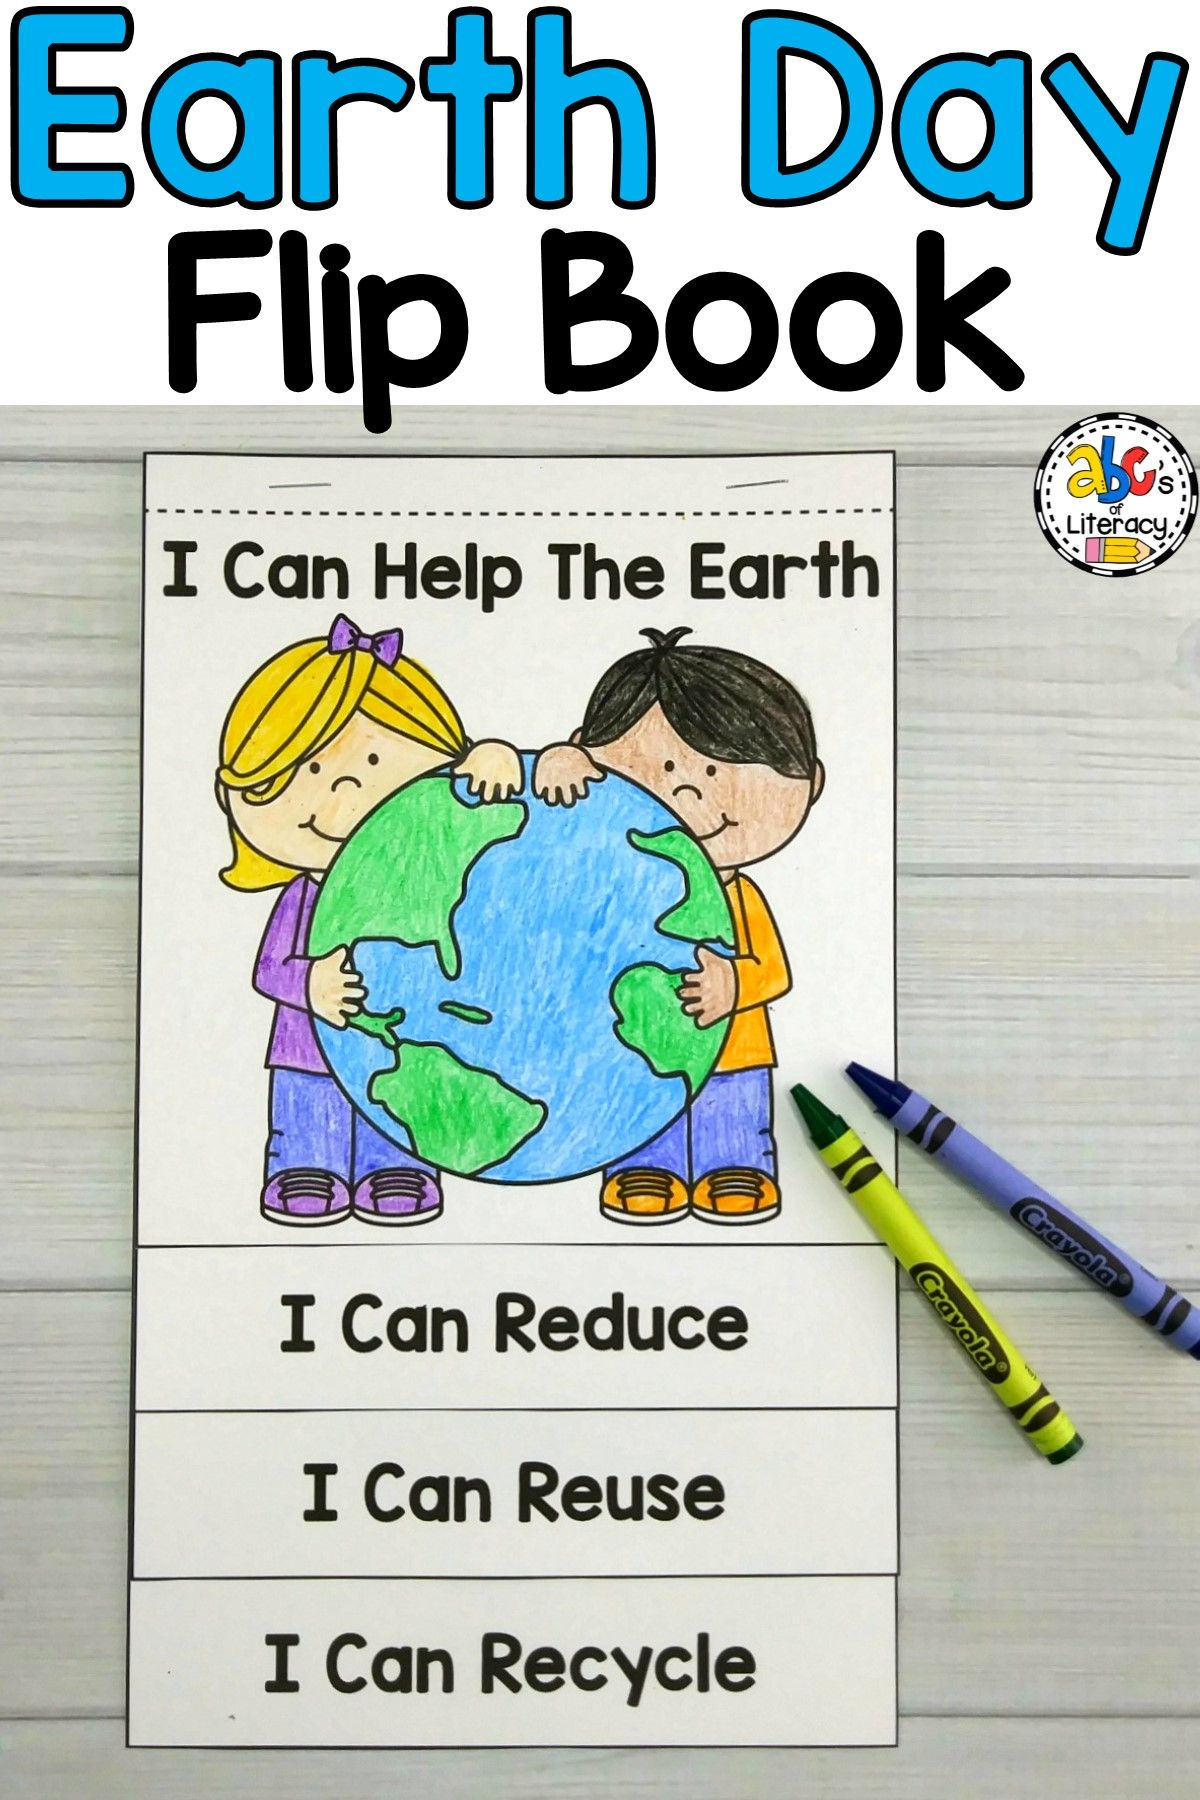 Are You Looking For A Earth Day Activity This Earth Day